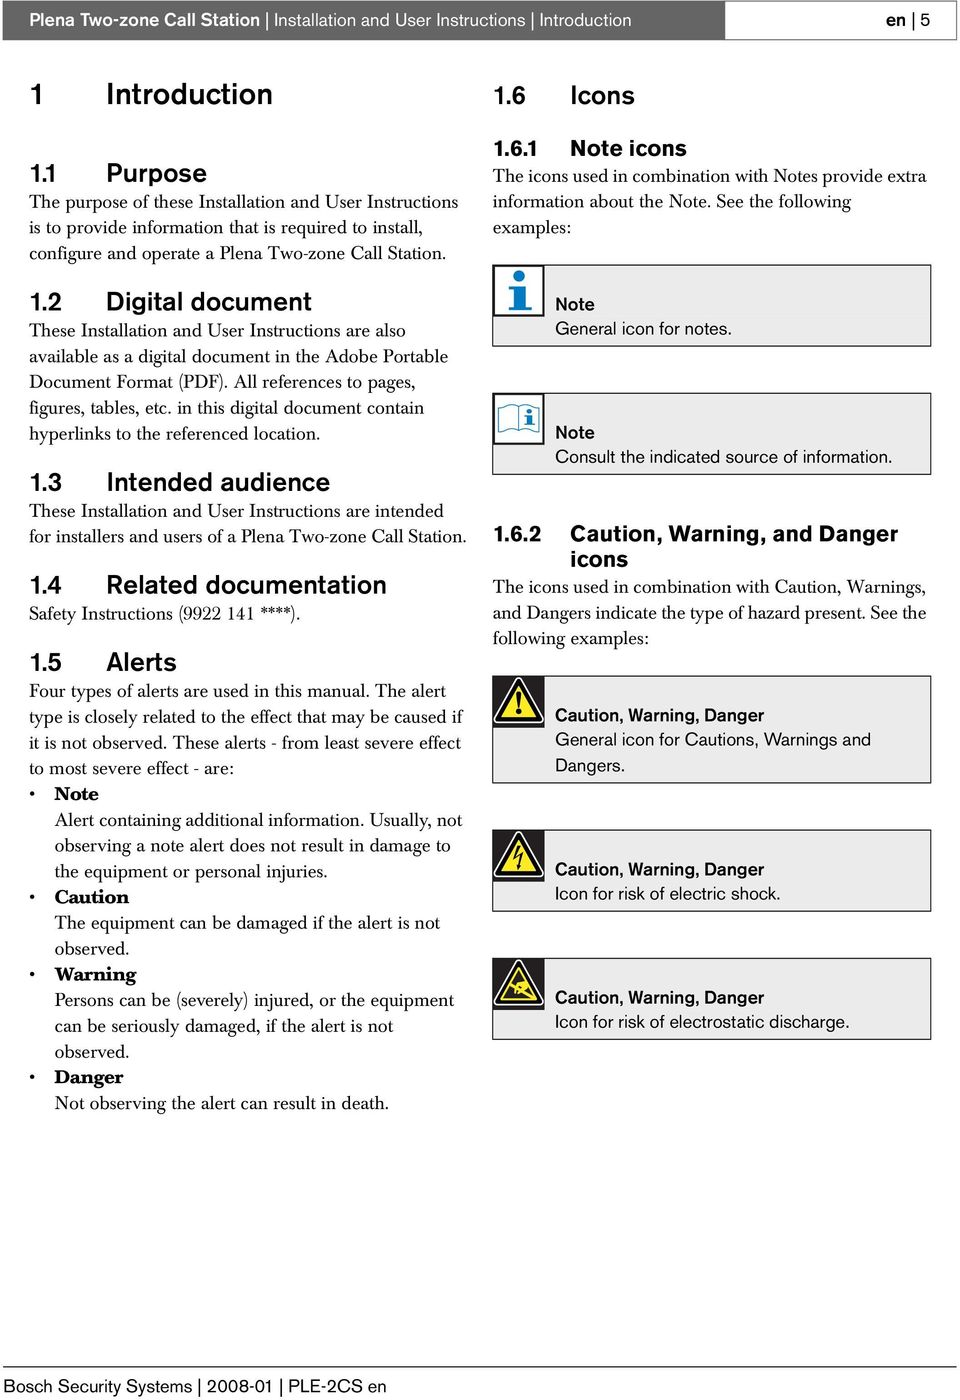 2 Digital document These Installation and User Instructions are also available as a digital document in the Adobe Portable Document Format (PDF). All references to pages, figures, tables, etc.